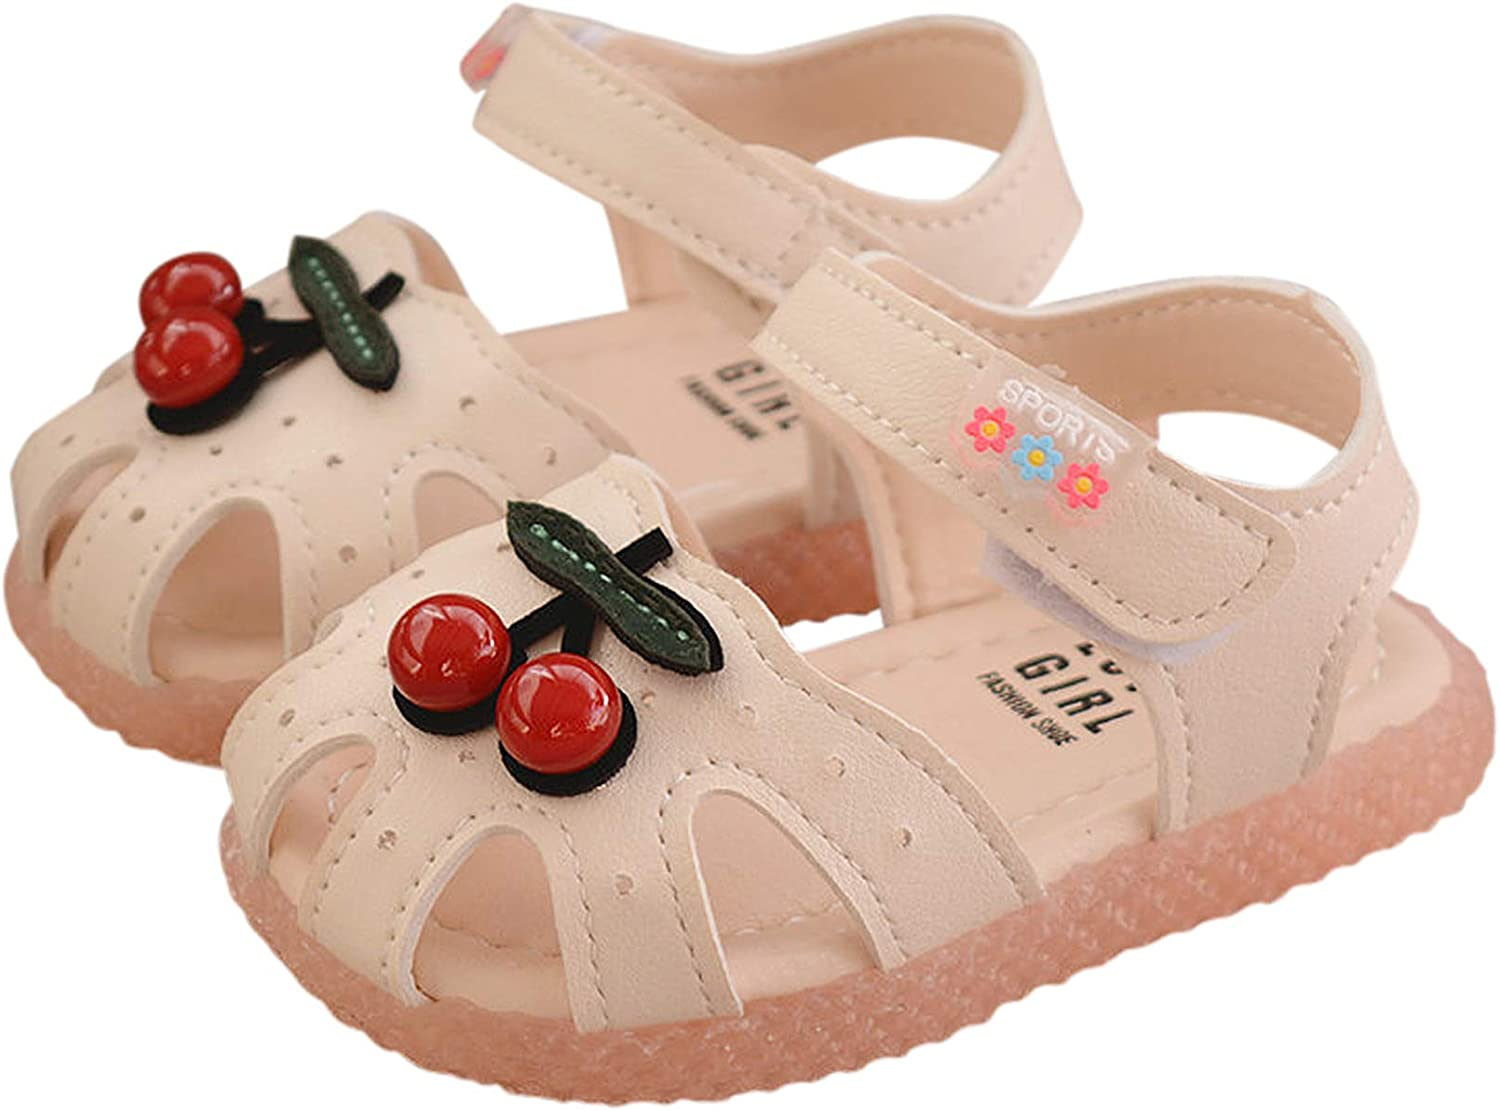 Durio Colorado Springs Mall Max 90% OFF Baby Sandals Cute for Shoes Girls Summer